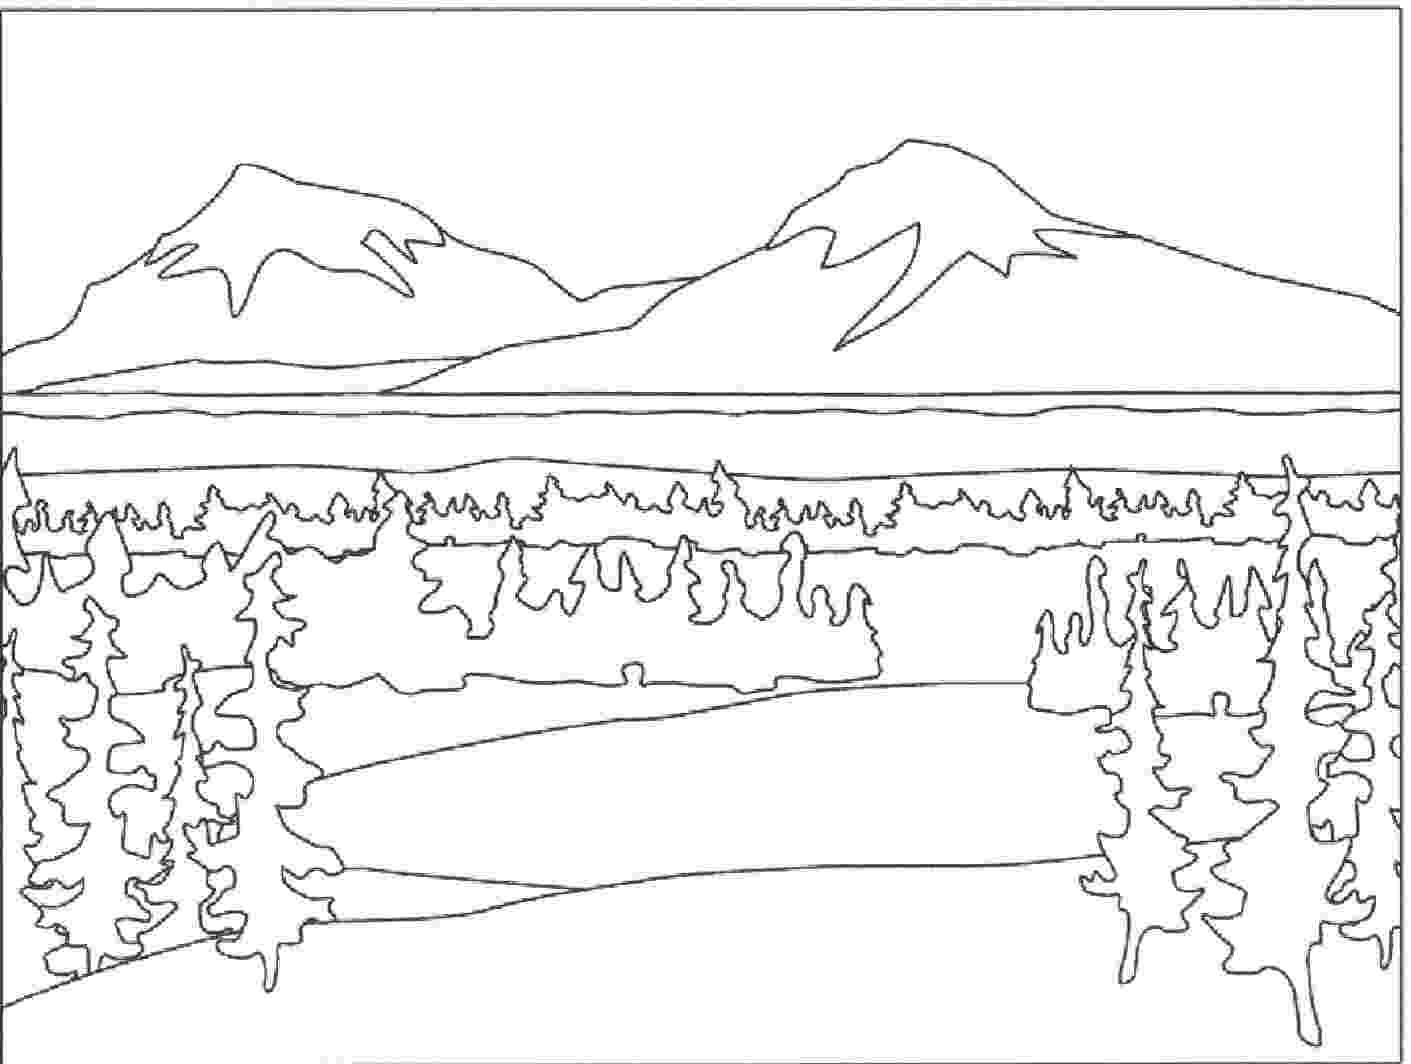 mountains coloring page mountains coloring pages best coloring pages for kids mountains coloring page